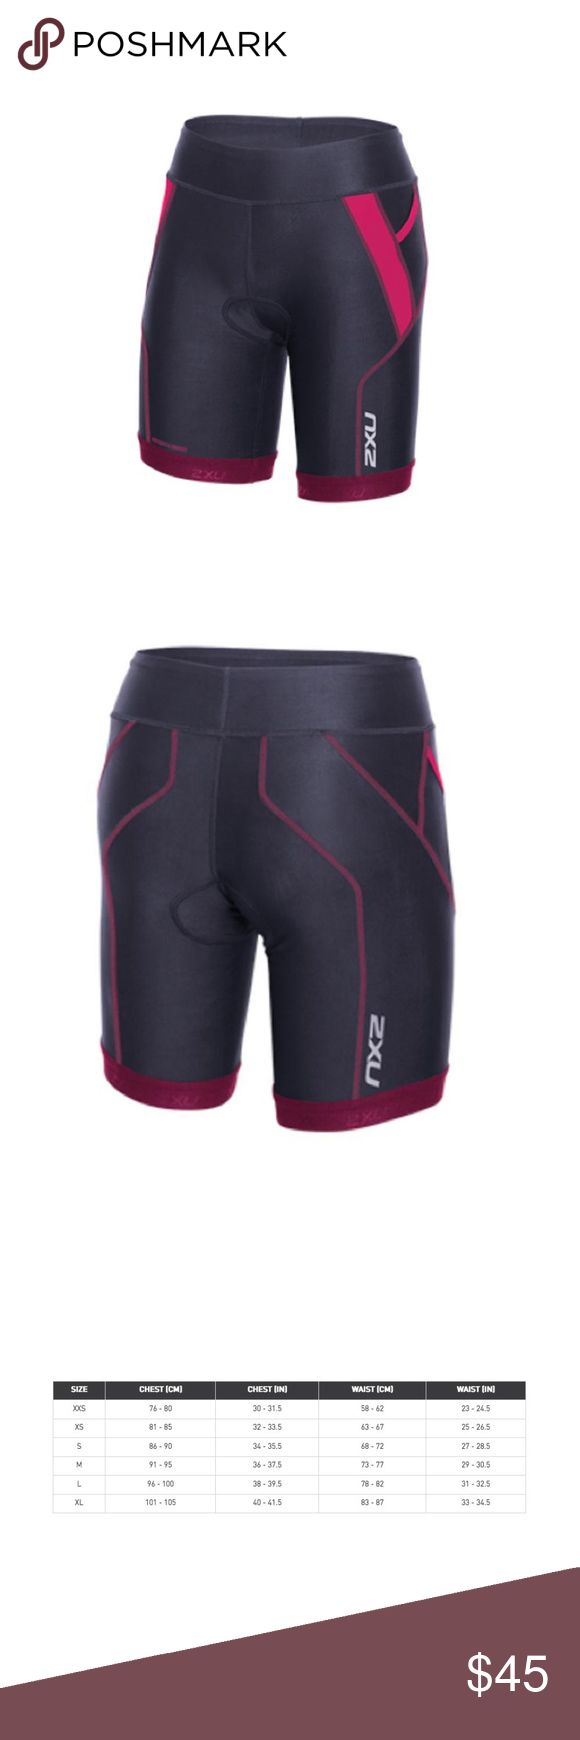 "2XU Perform Triathlon Short 7"" inseam Engineered from SBR POWER fabric, the Perform 7"" Tri Short is highly flexible and light weight, allowing for impressive, long lasting performance. Complete with flatlock stitching for comfort and a reinforced waistband for a premium fit, this is a great choice for short to longer distance triathlons.  UPF 50 sun protection, two pockets. Tri specific LD chamois. 2XU Shorts"